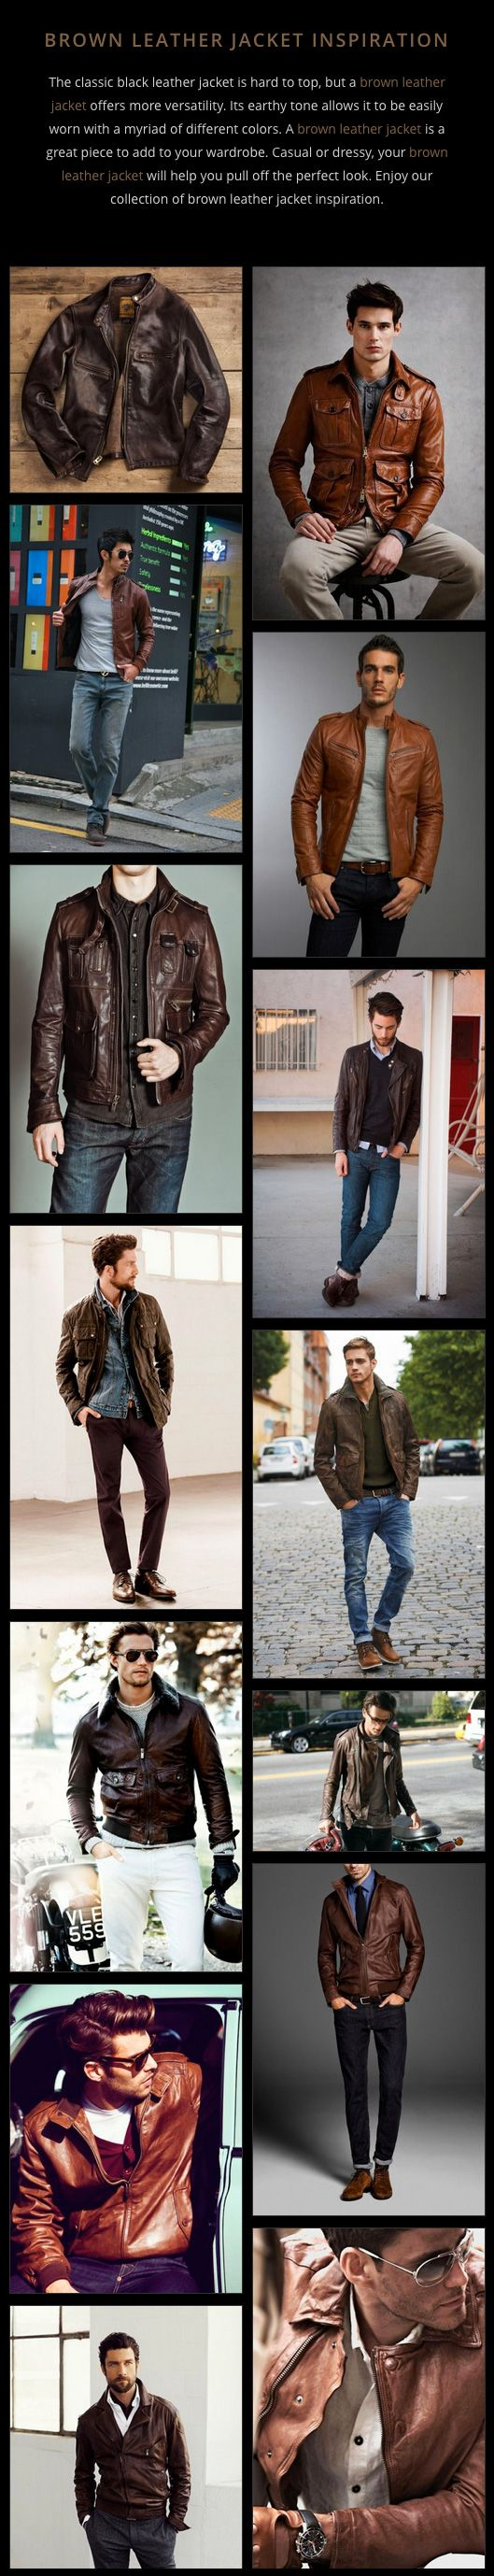 I am normally very selective about wearing brown; the brown leather jacket is an exception. A brown leather jacket is one item that may top the look of a classic, black leather jacket. Enjoy a fashion inspired collection of brown leather jackets.